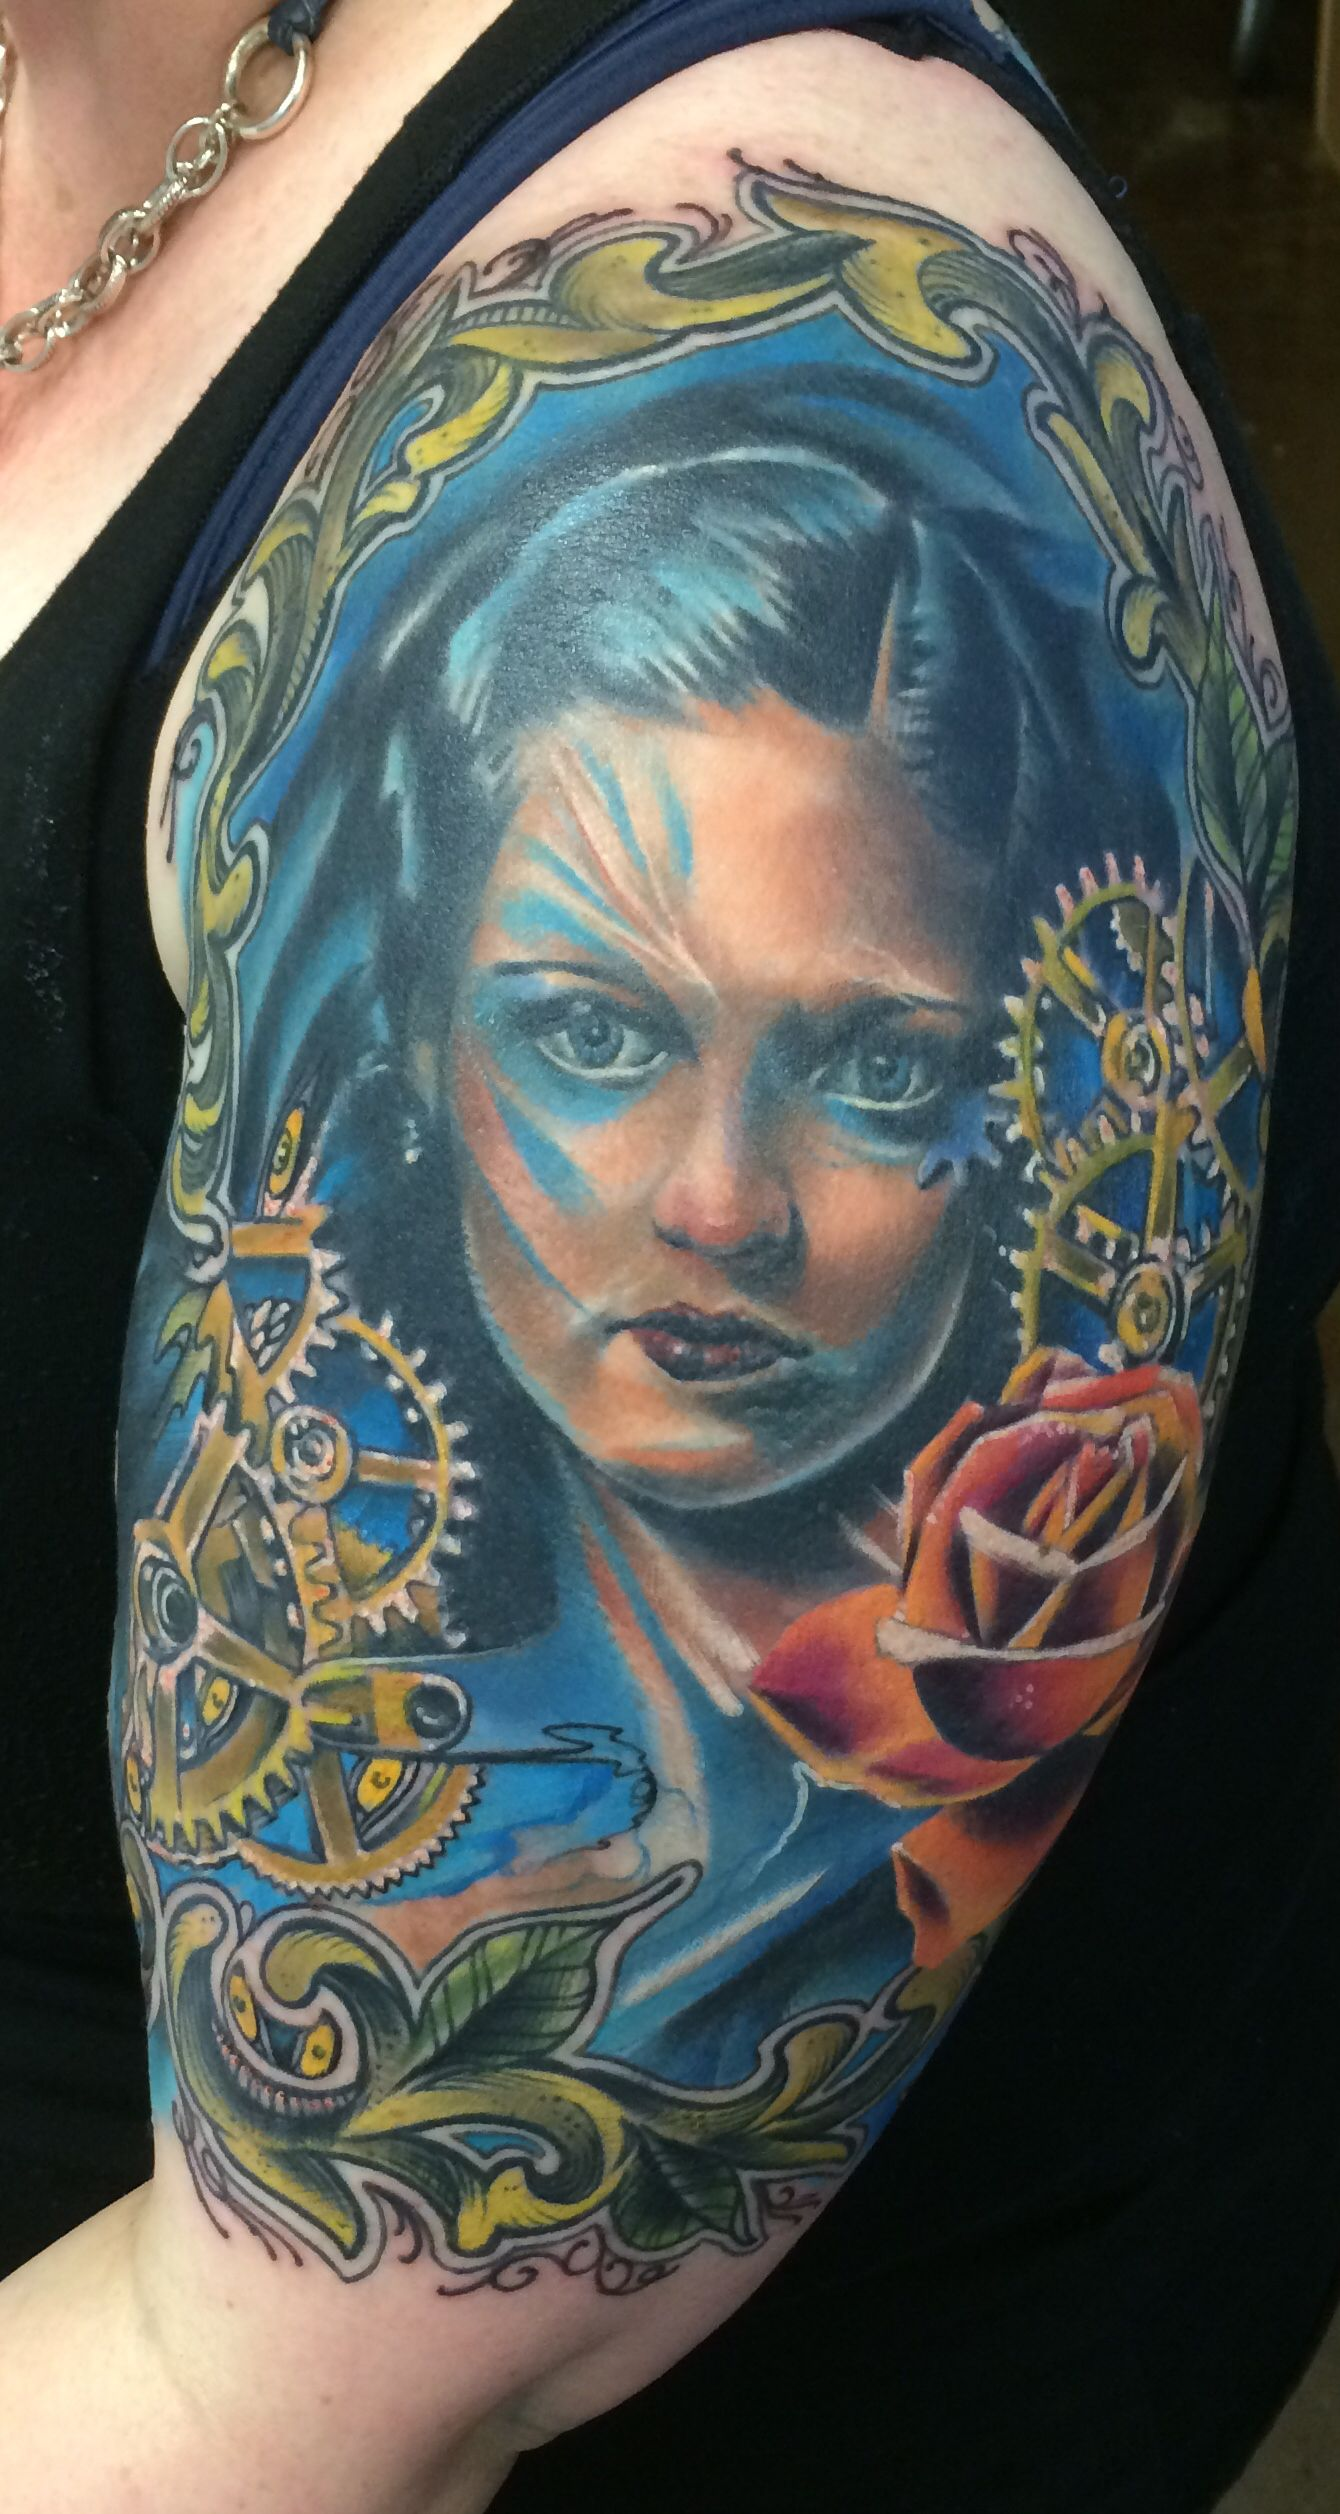 Its finally done by joshua hood at 8th ave tattoo in